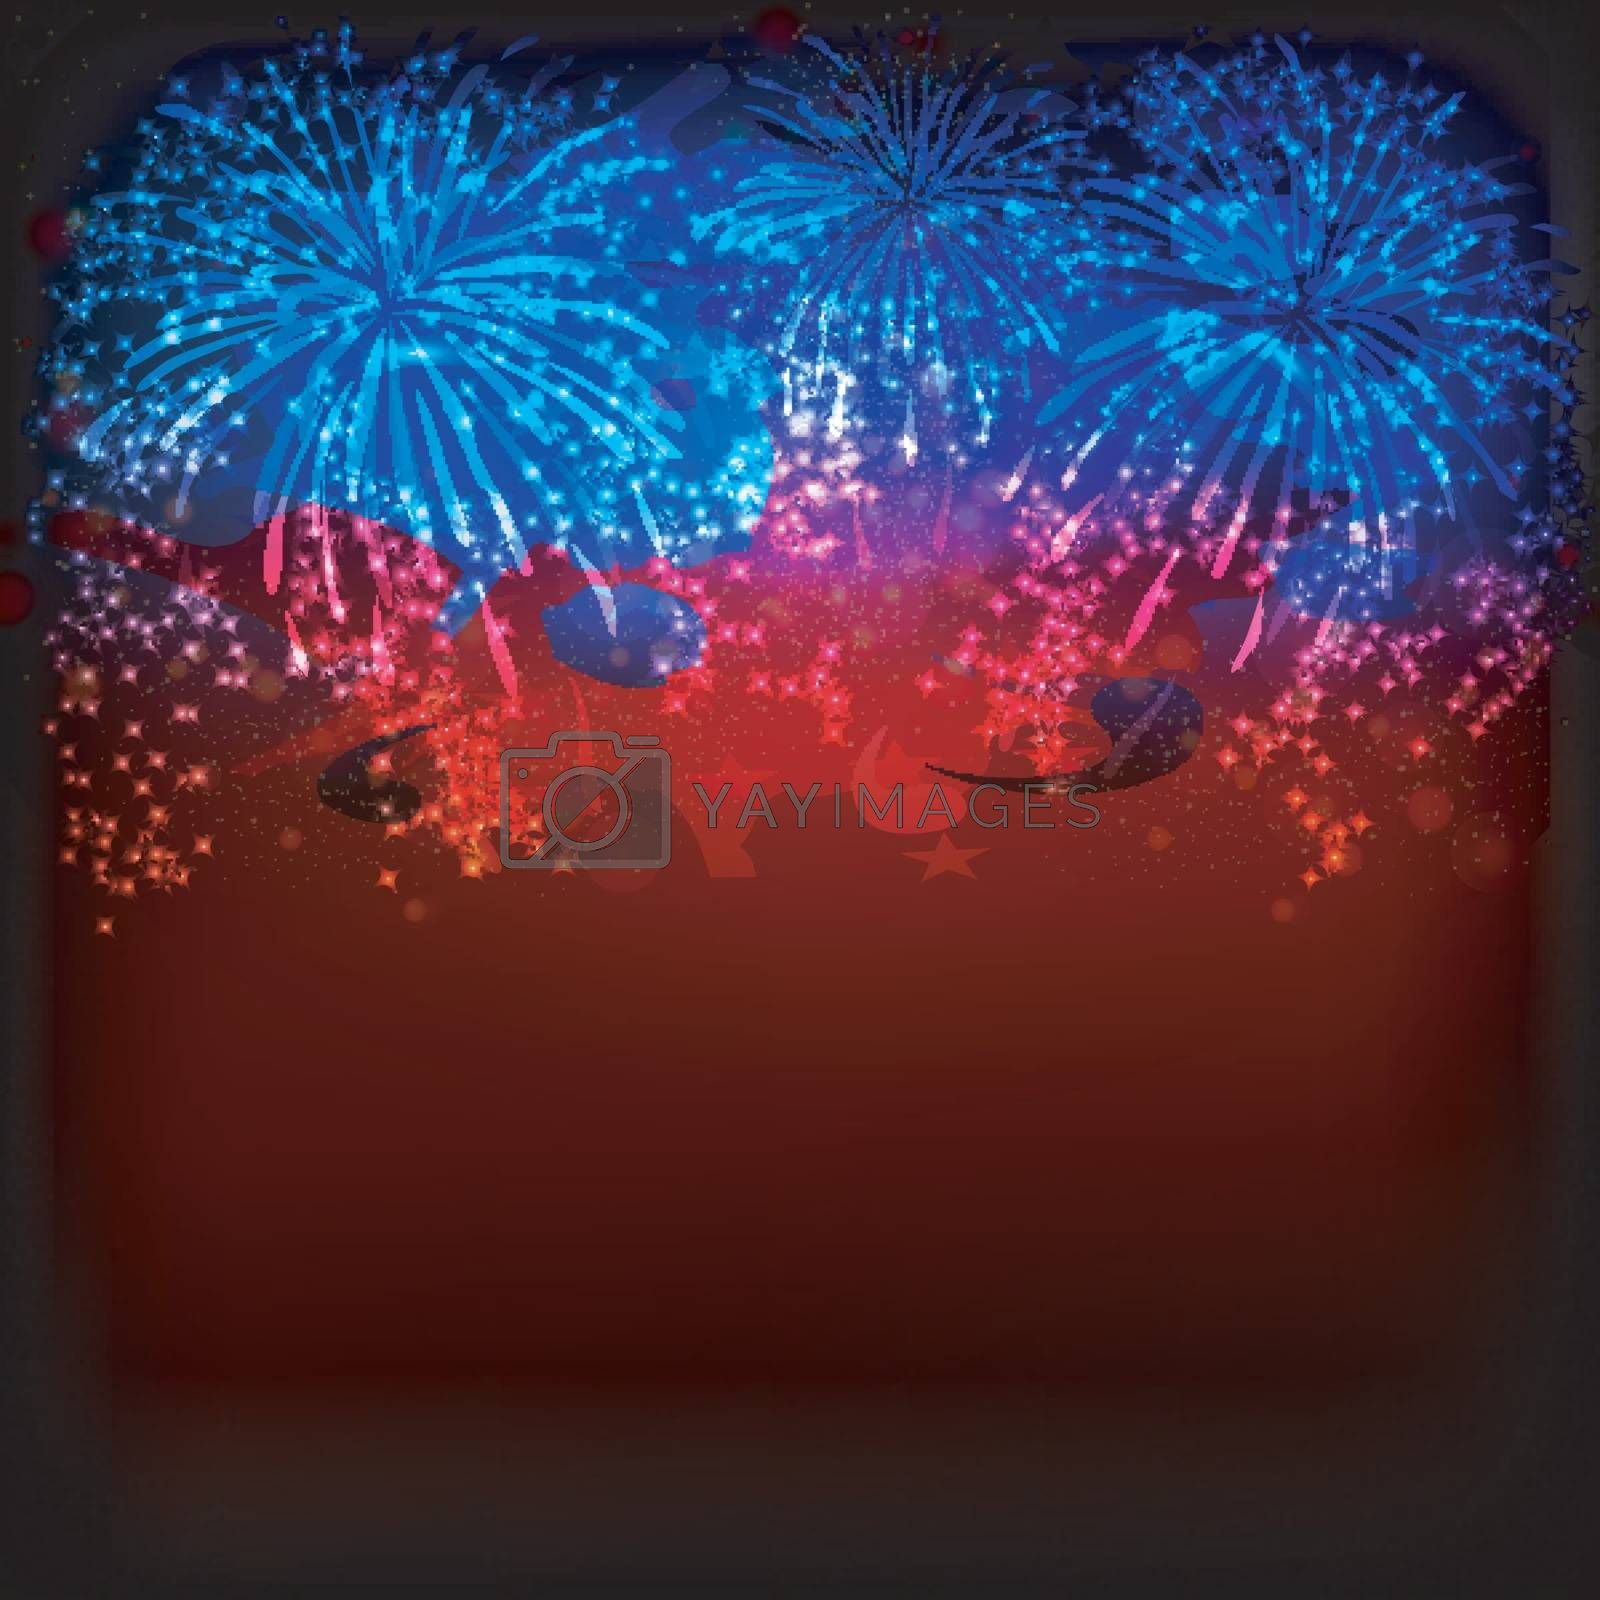 Creative sparkling fireworks explosion background in blue and red colors.